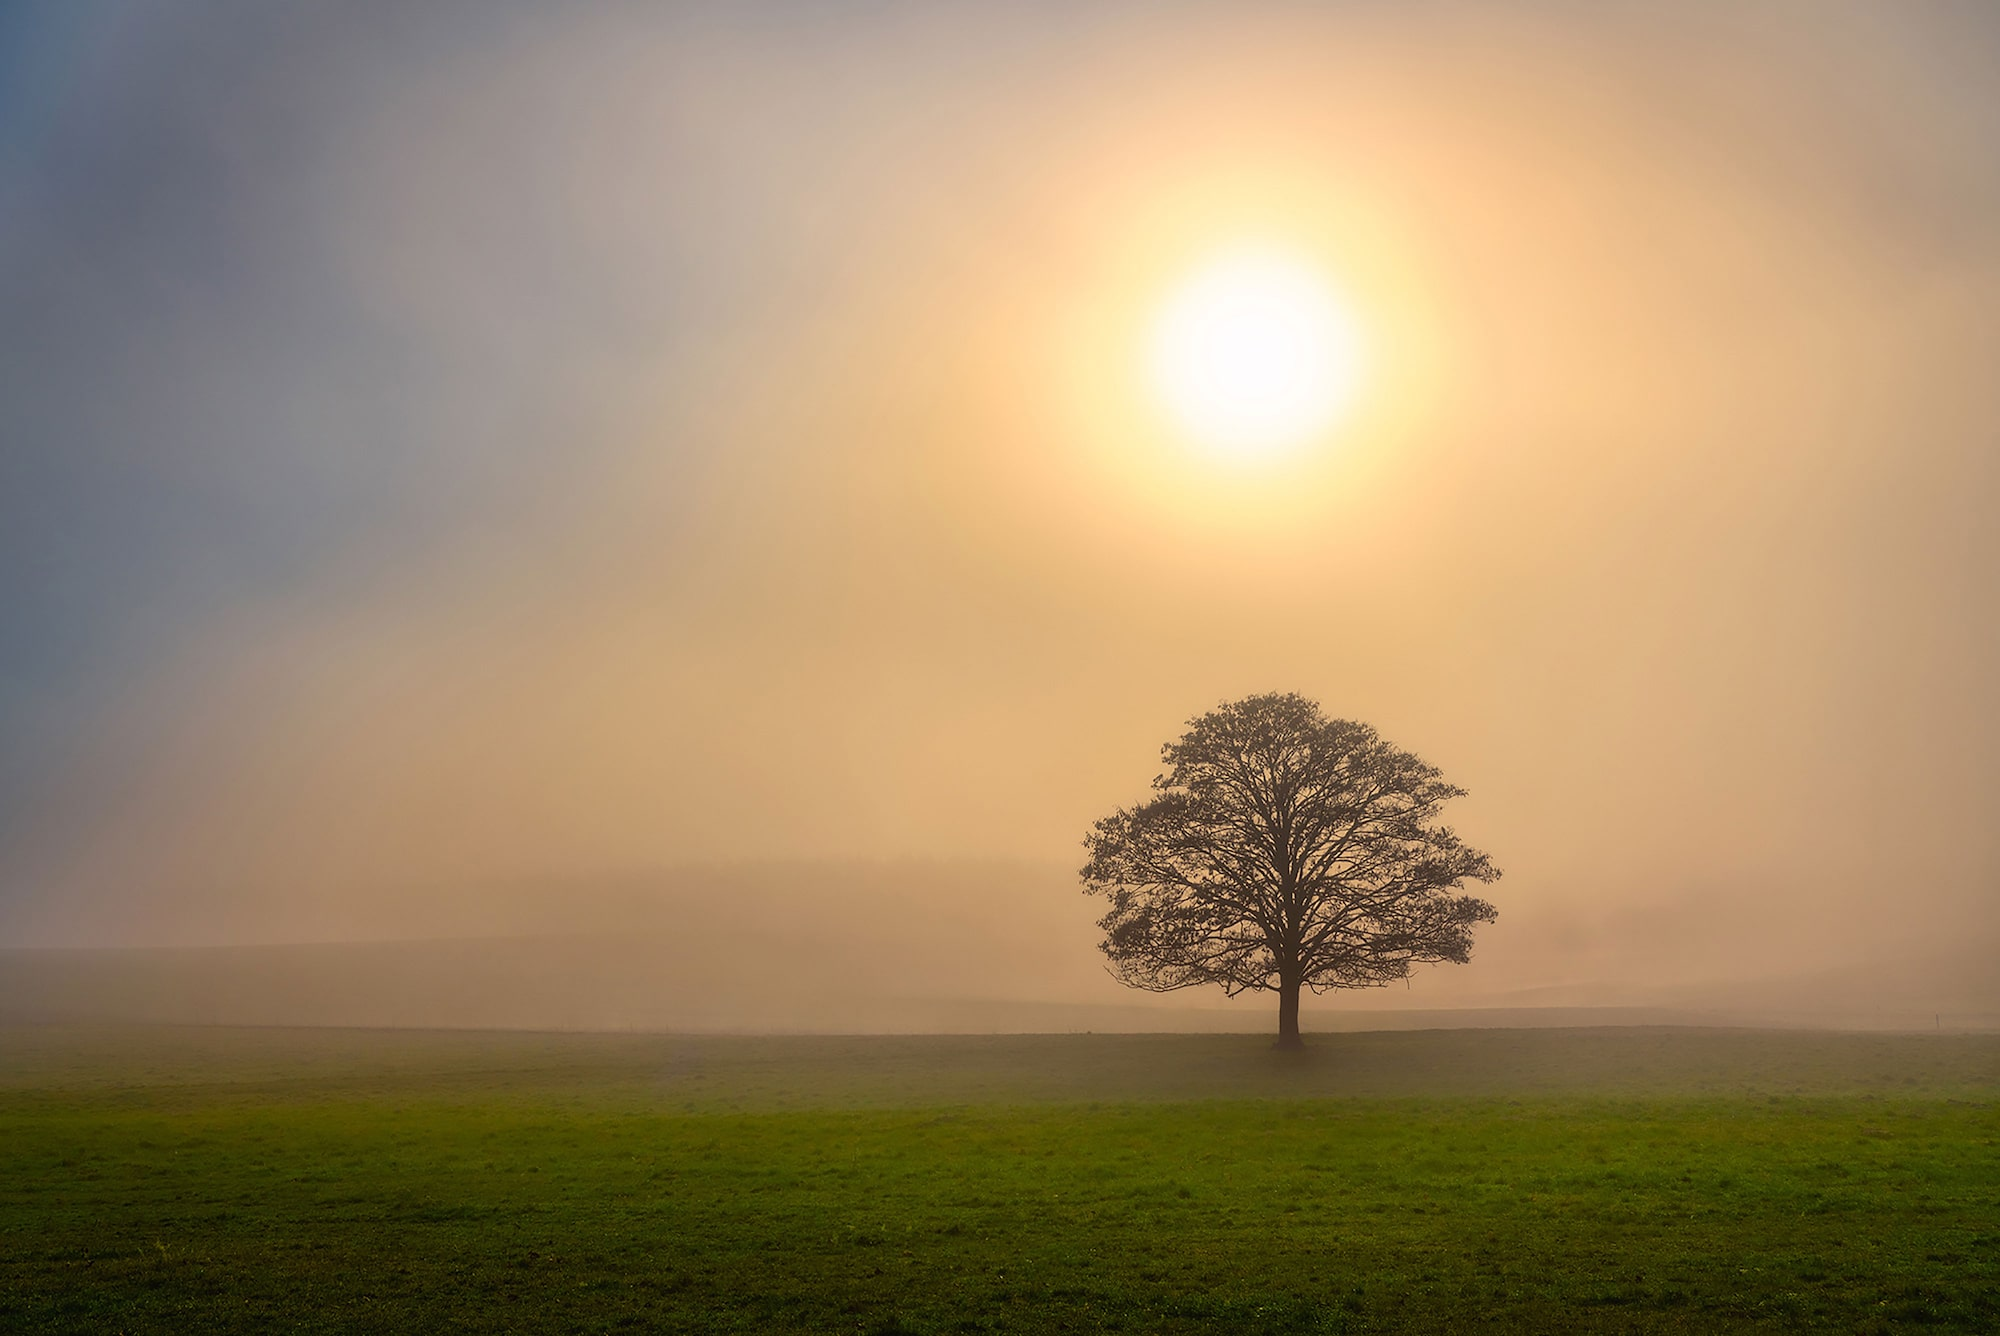 michael schaake sony alpha 7RIII solitary tree in a serene landscape with a misty sun behind